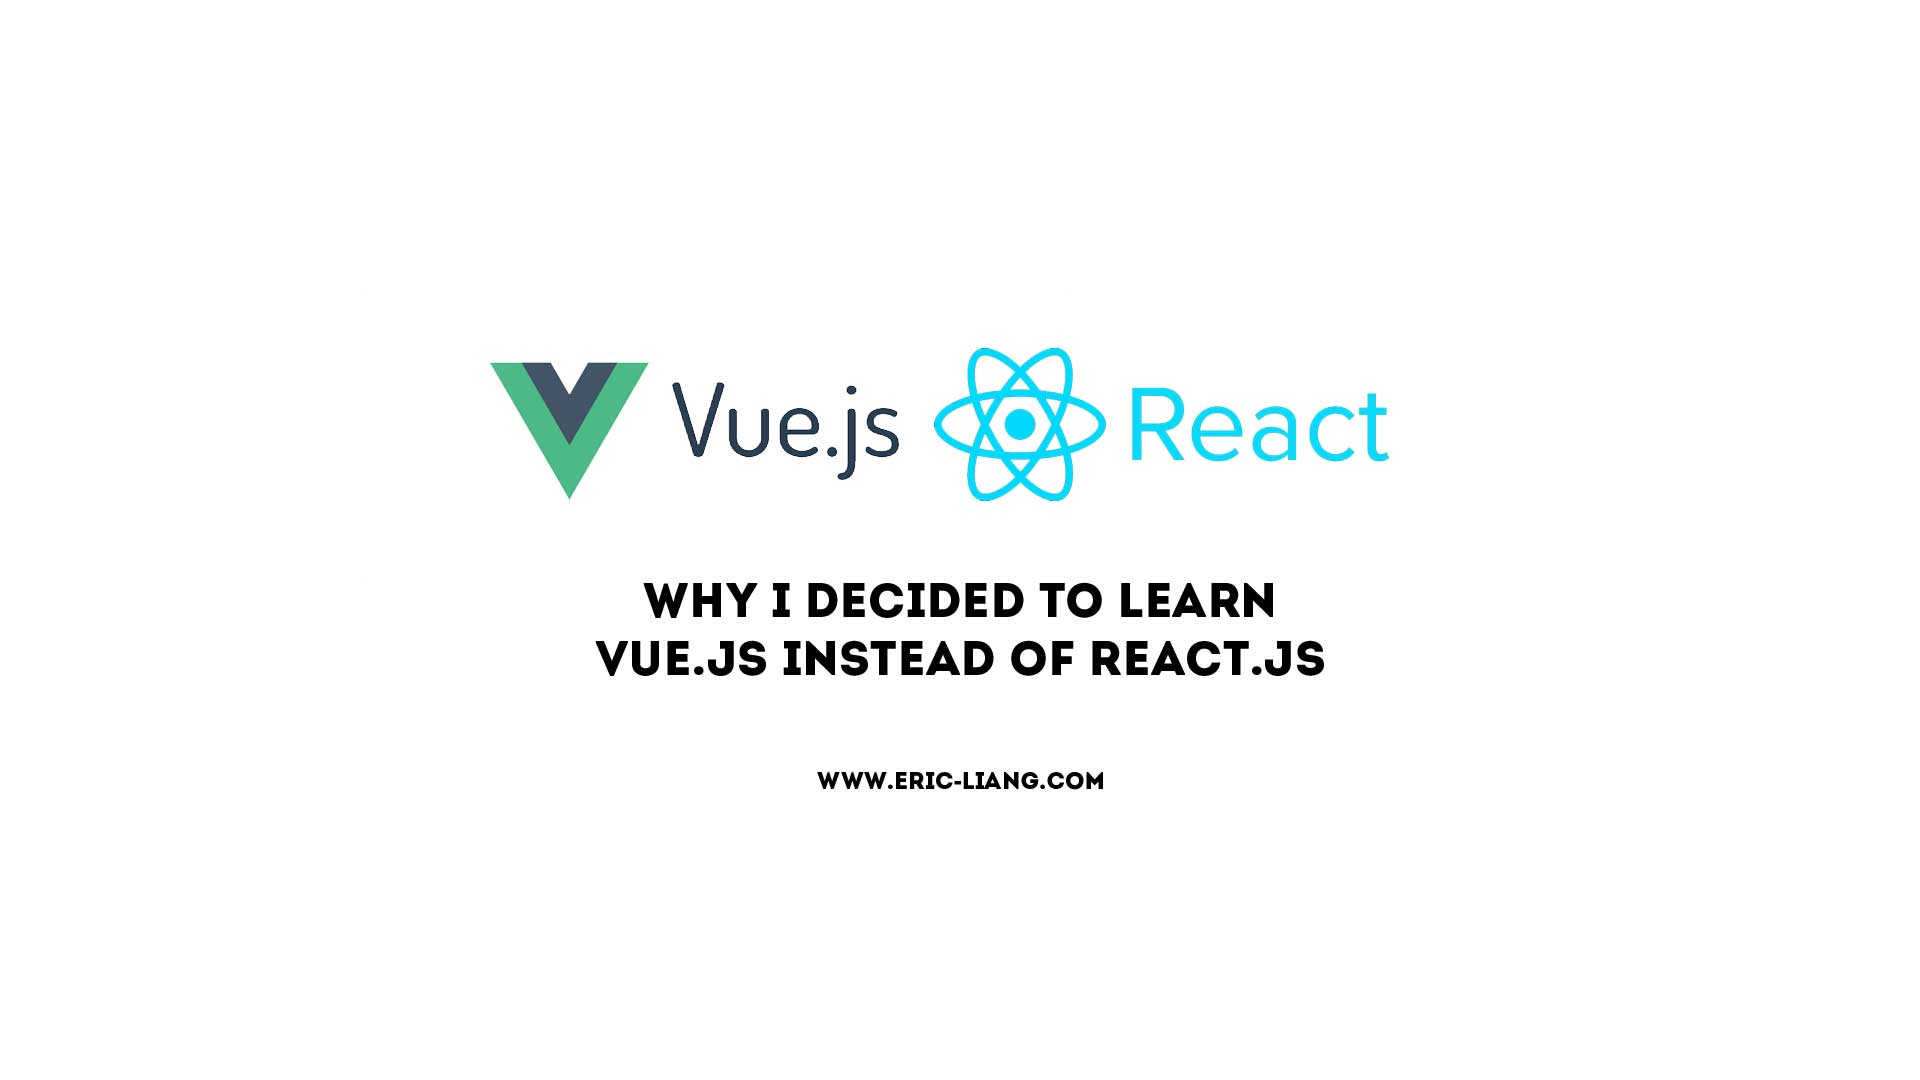 Why I Decided to Learn Vue.js Instead of React.js